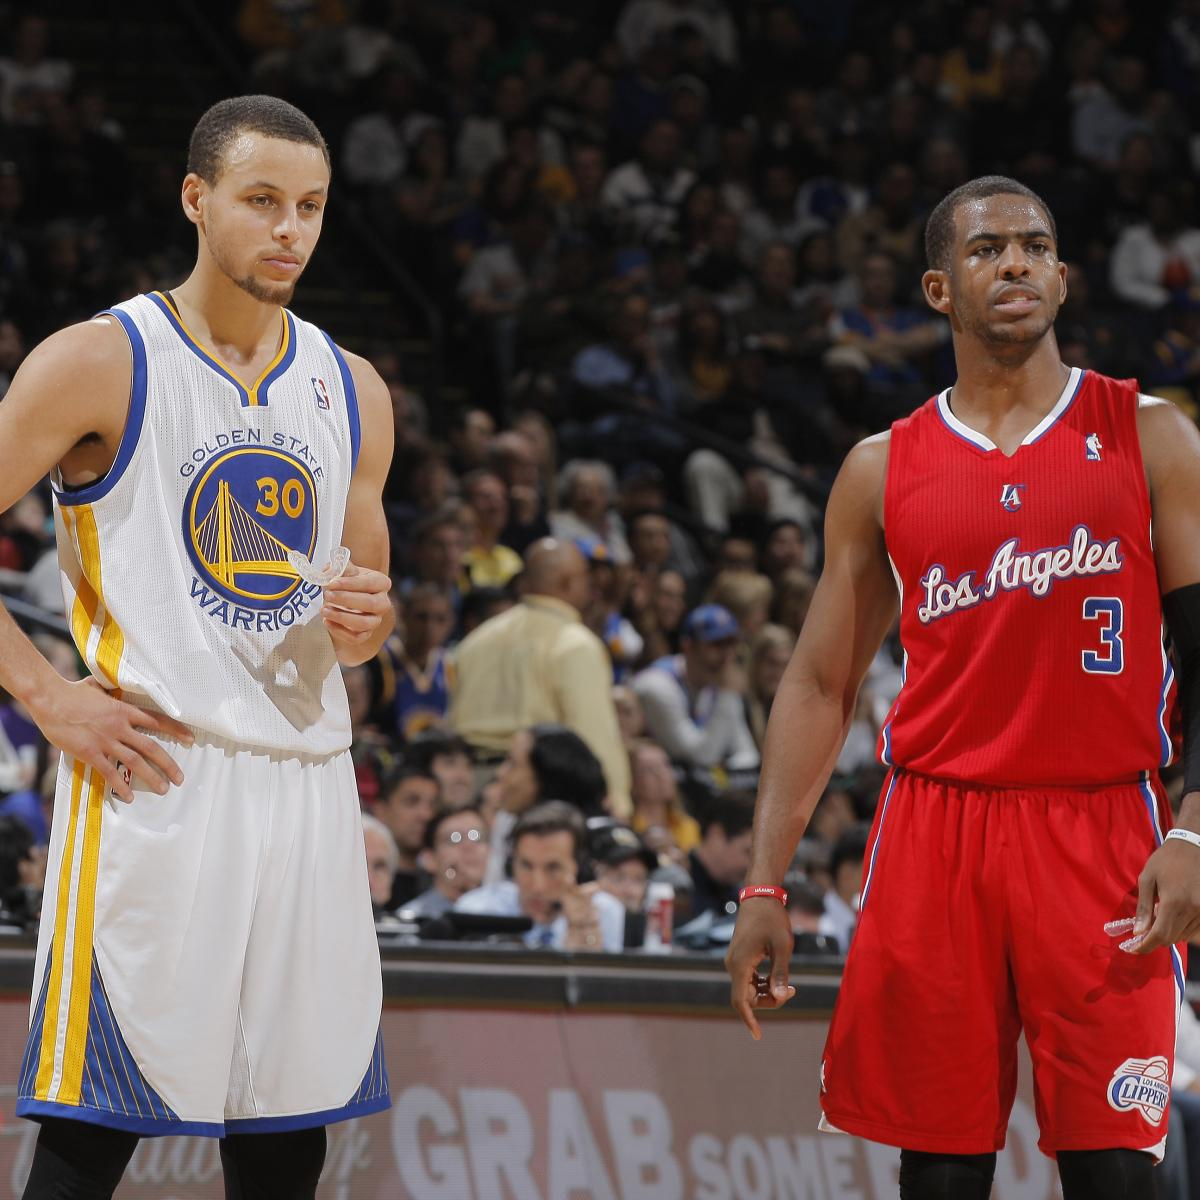 Clippers Vs. Warriors Christmas Day 2013: Complete